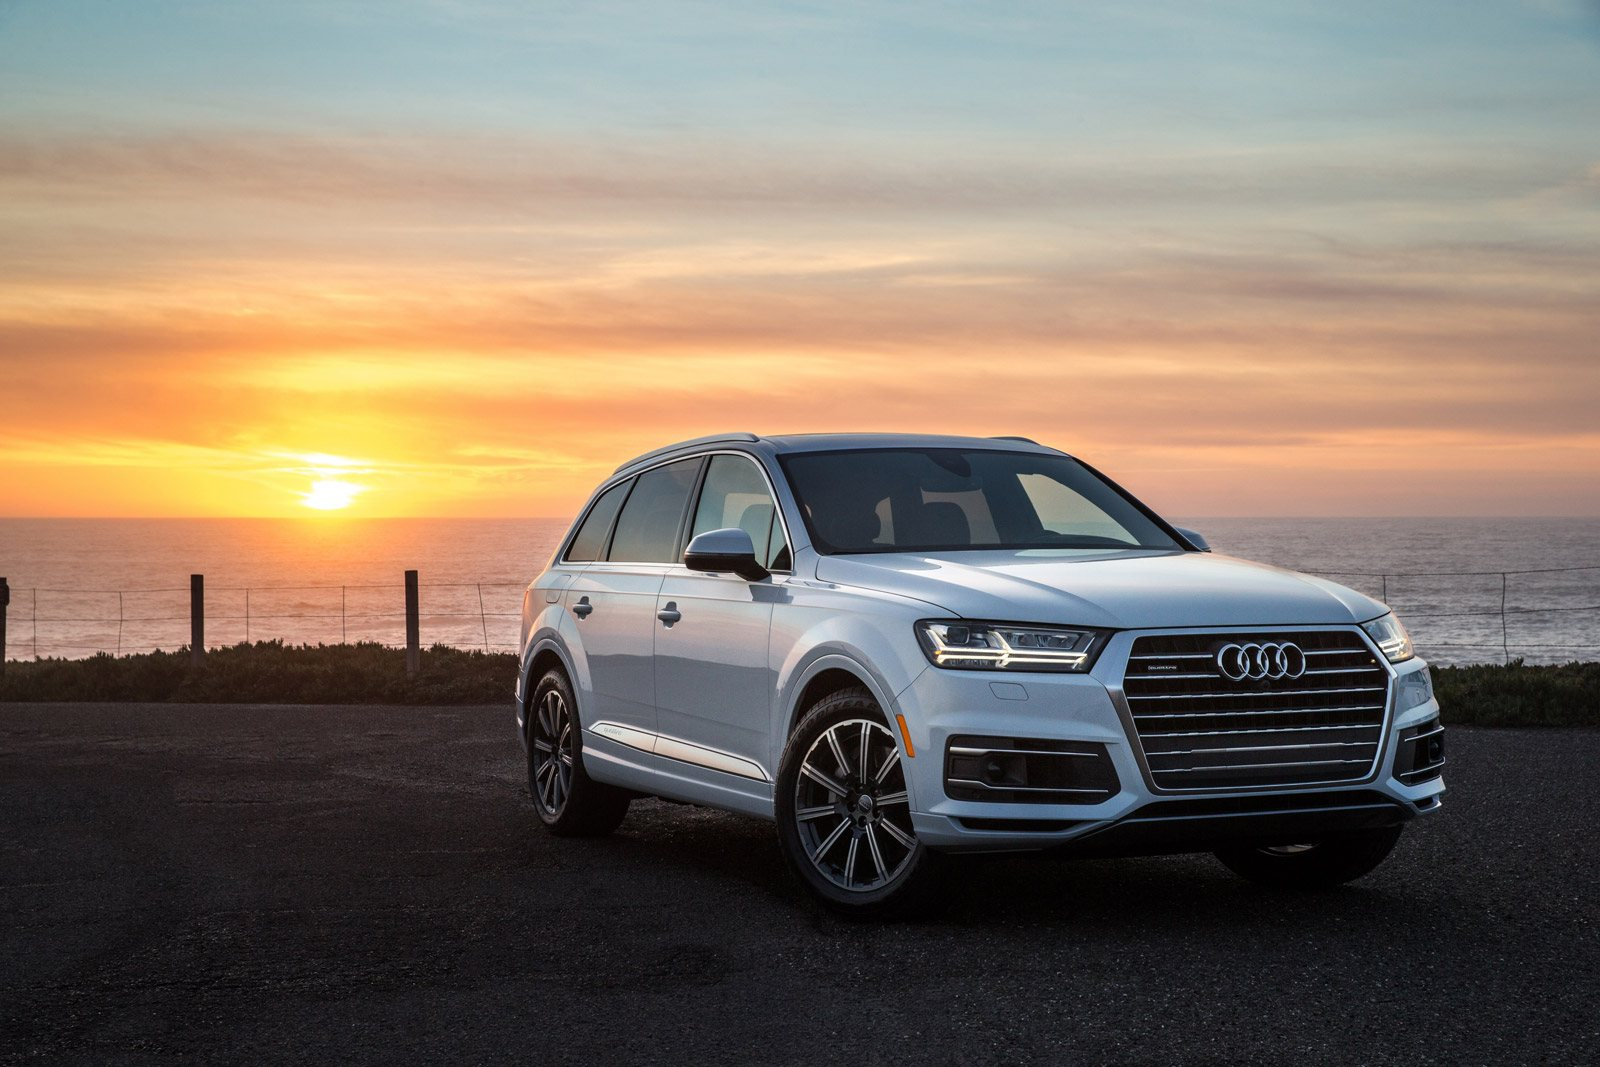 2018 audi jeep. contemporary audi the largest suv audi currently offers is the q7 and for 2018 model  year advanced key now comes standard across all trims with audi jeep